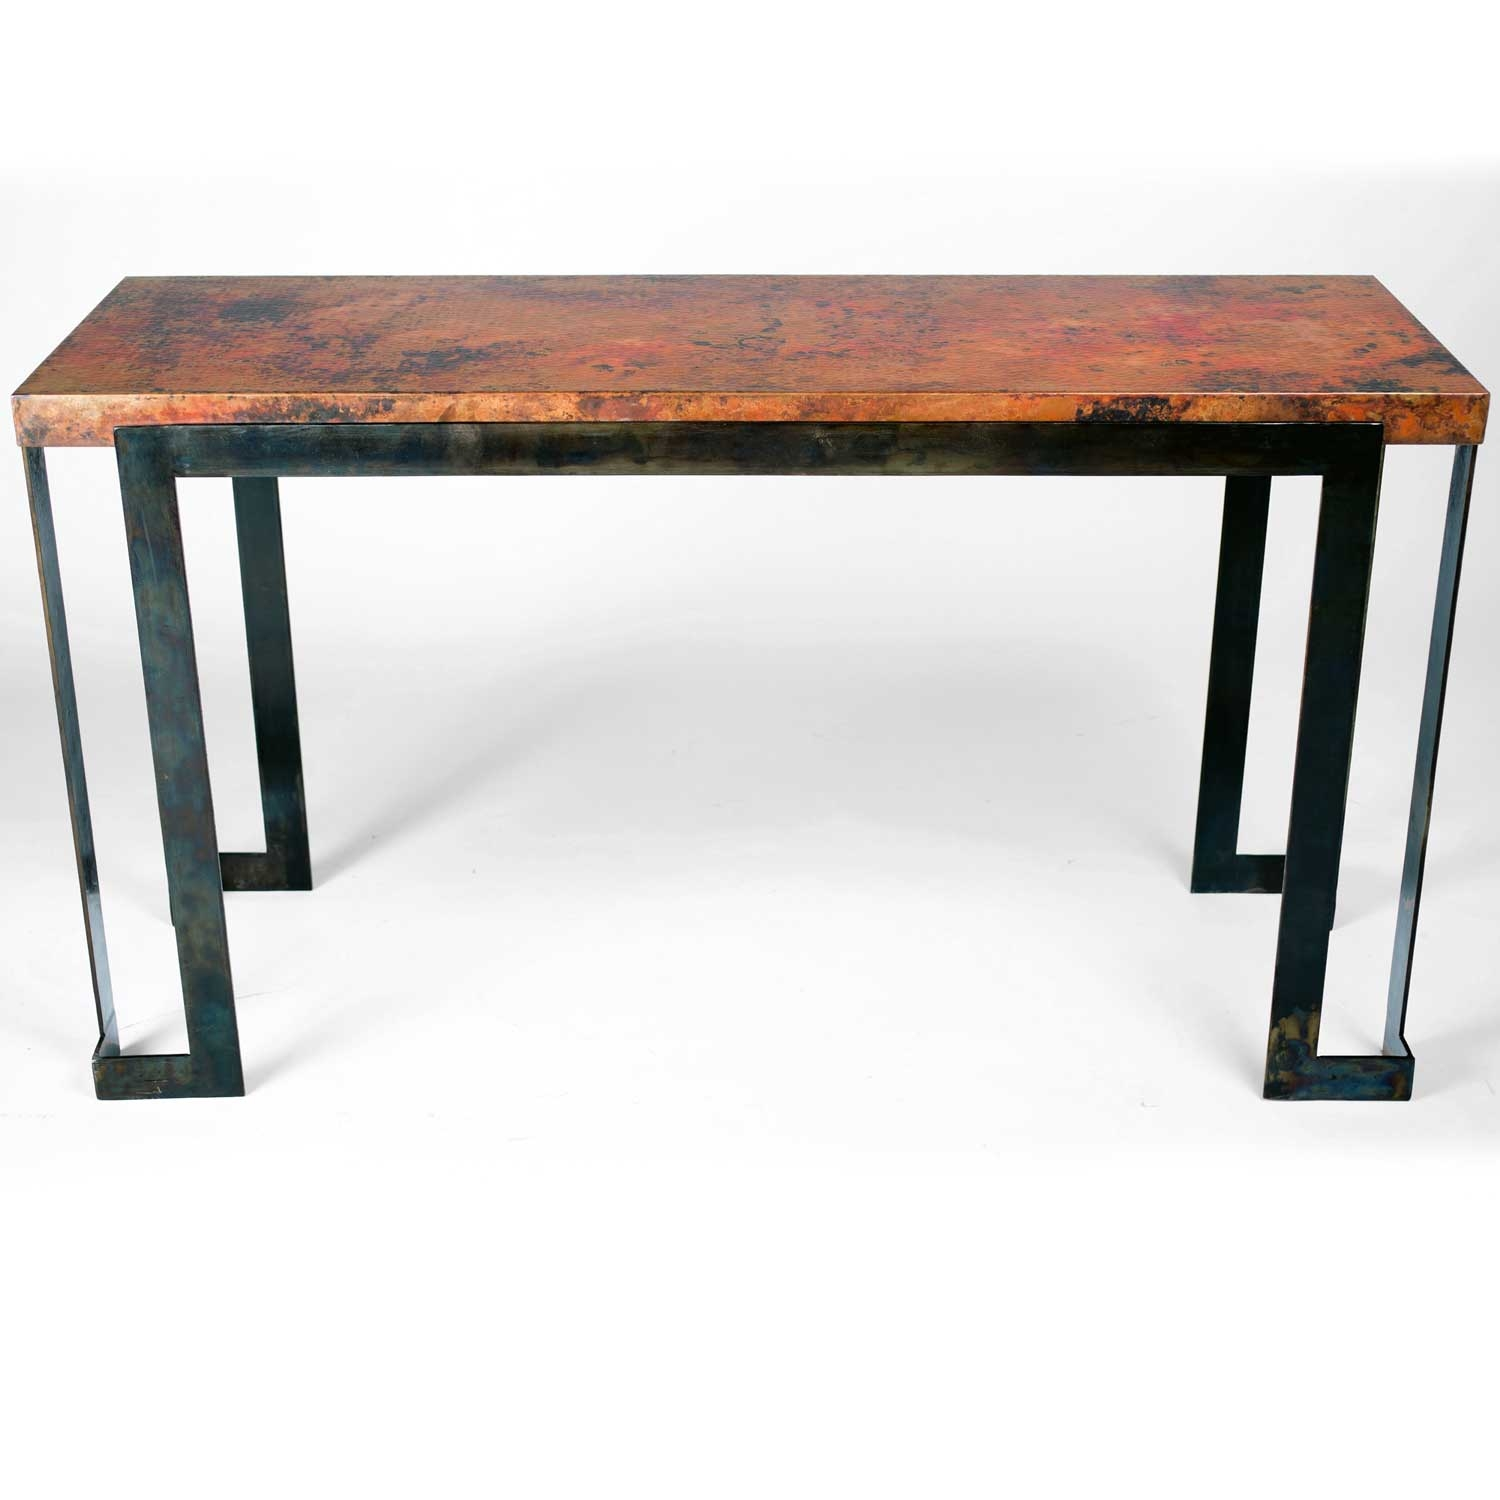 Steel Strap Console Table with Hammered Copper Top : TWI BFM5 F 514A 2 from timelesswroughtiron.com size 1500 x 1500 jpeg 252kB